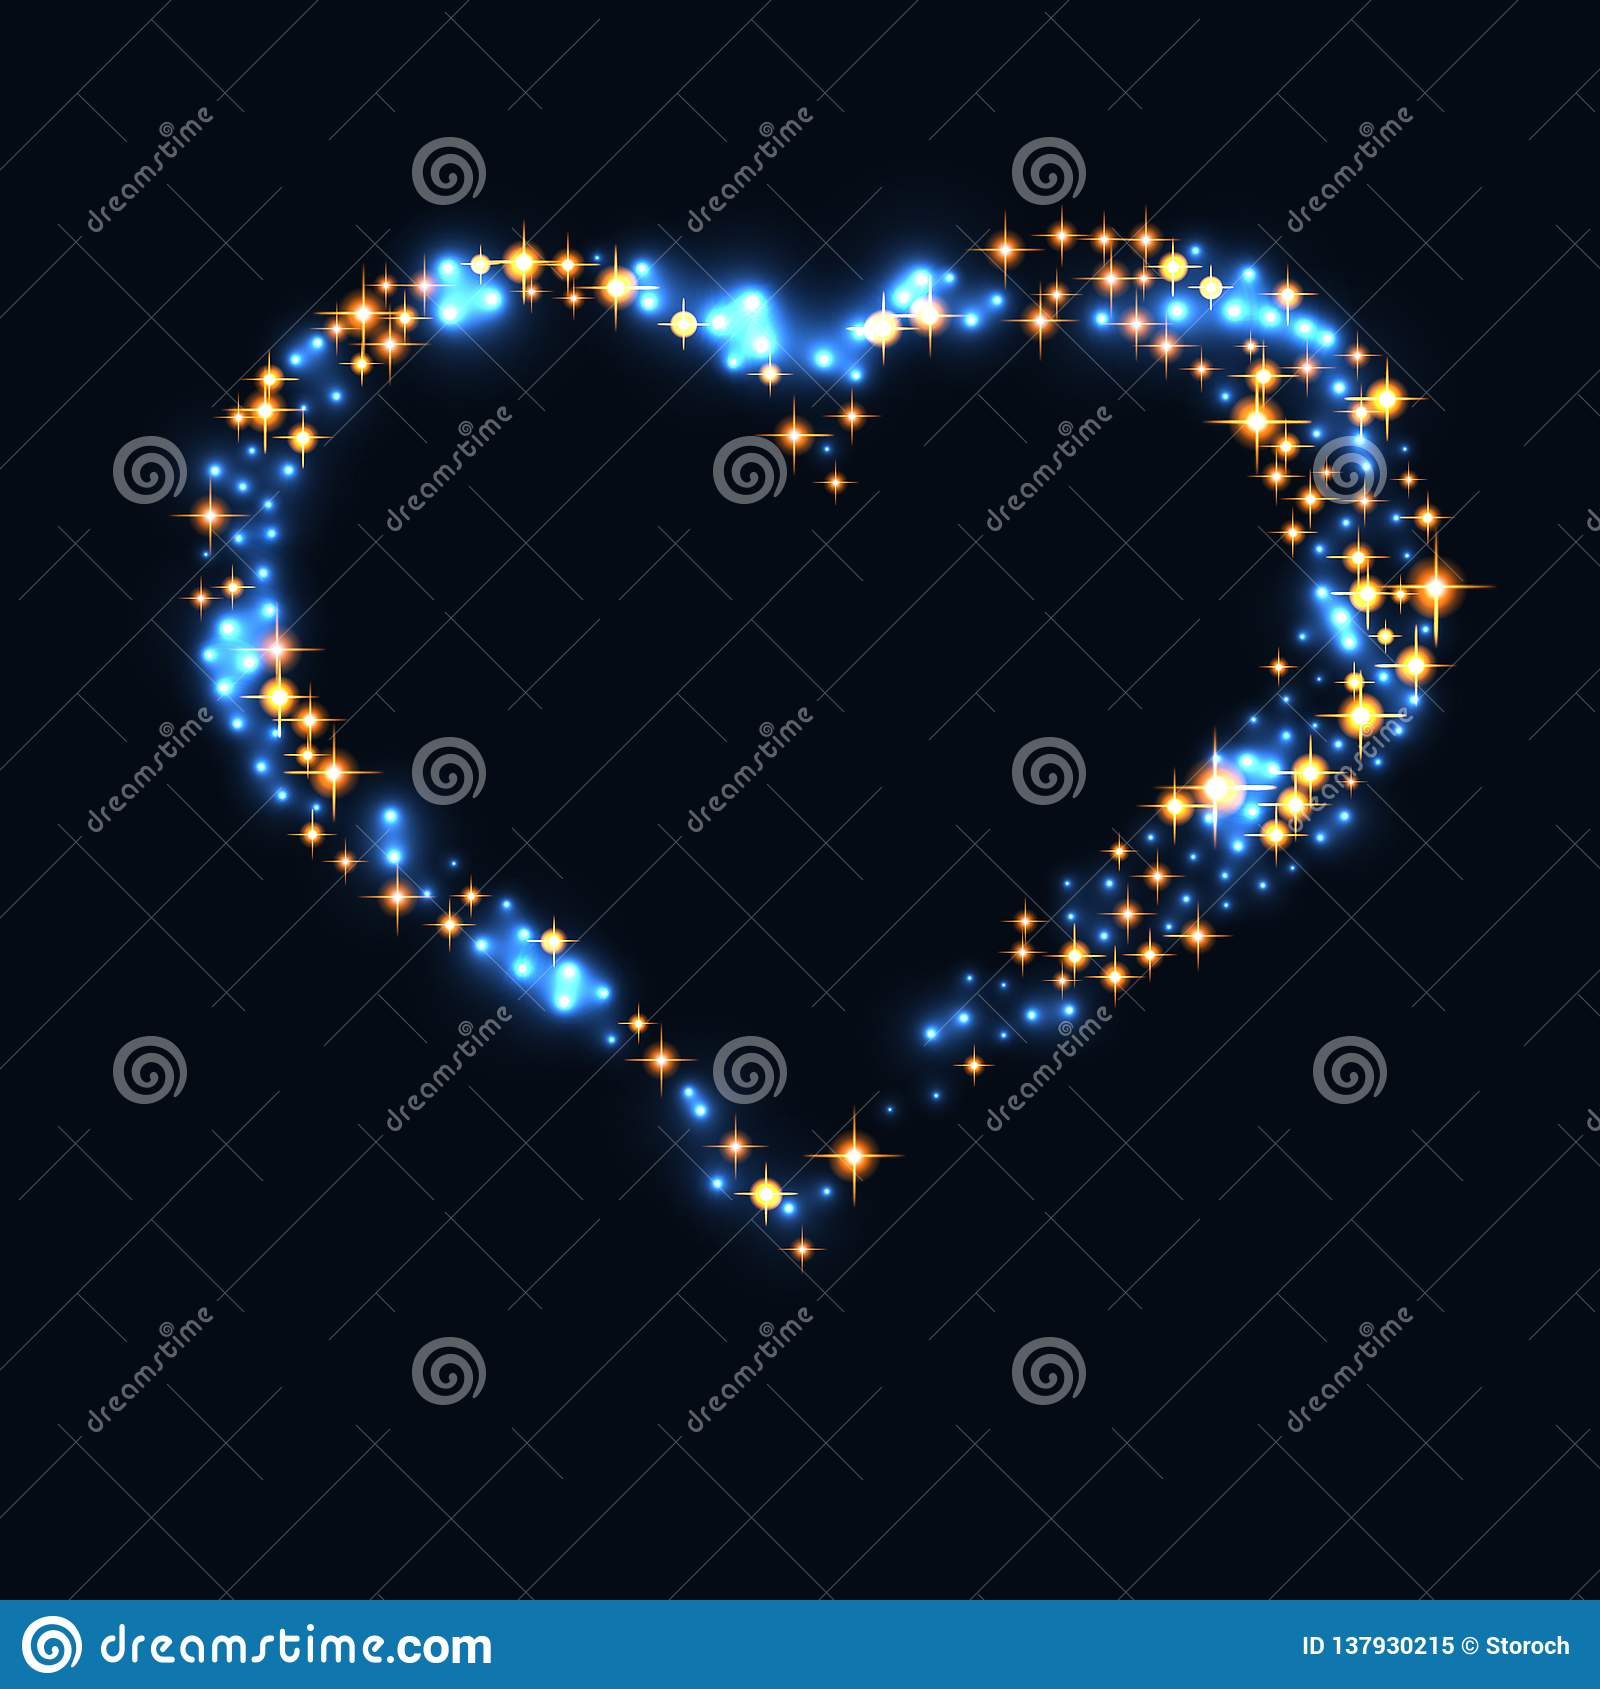 Abstract design - blue glitter particles in heart shape. Glowing sparkling particles on dark background